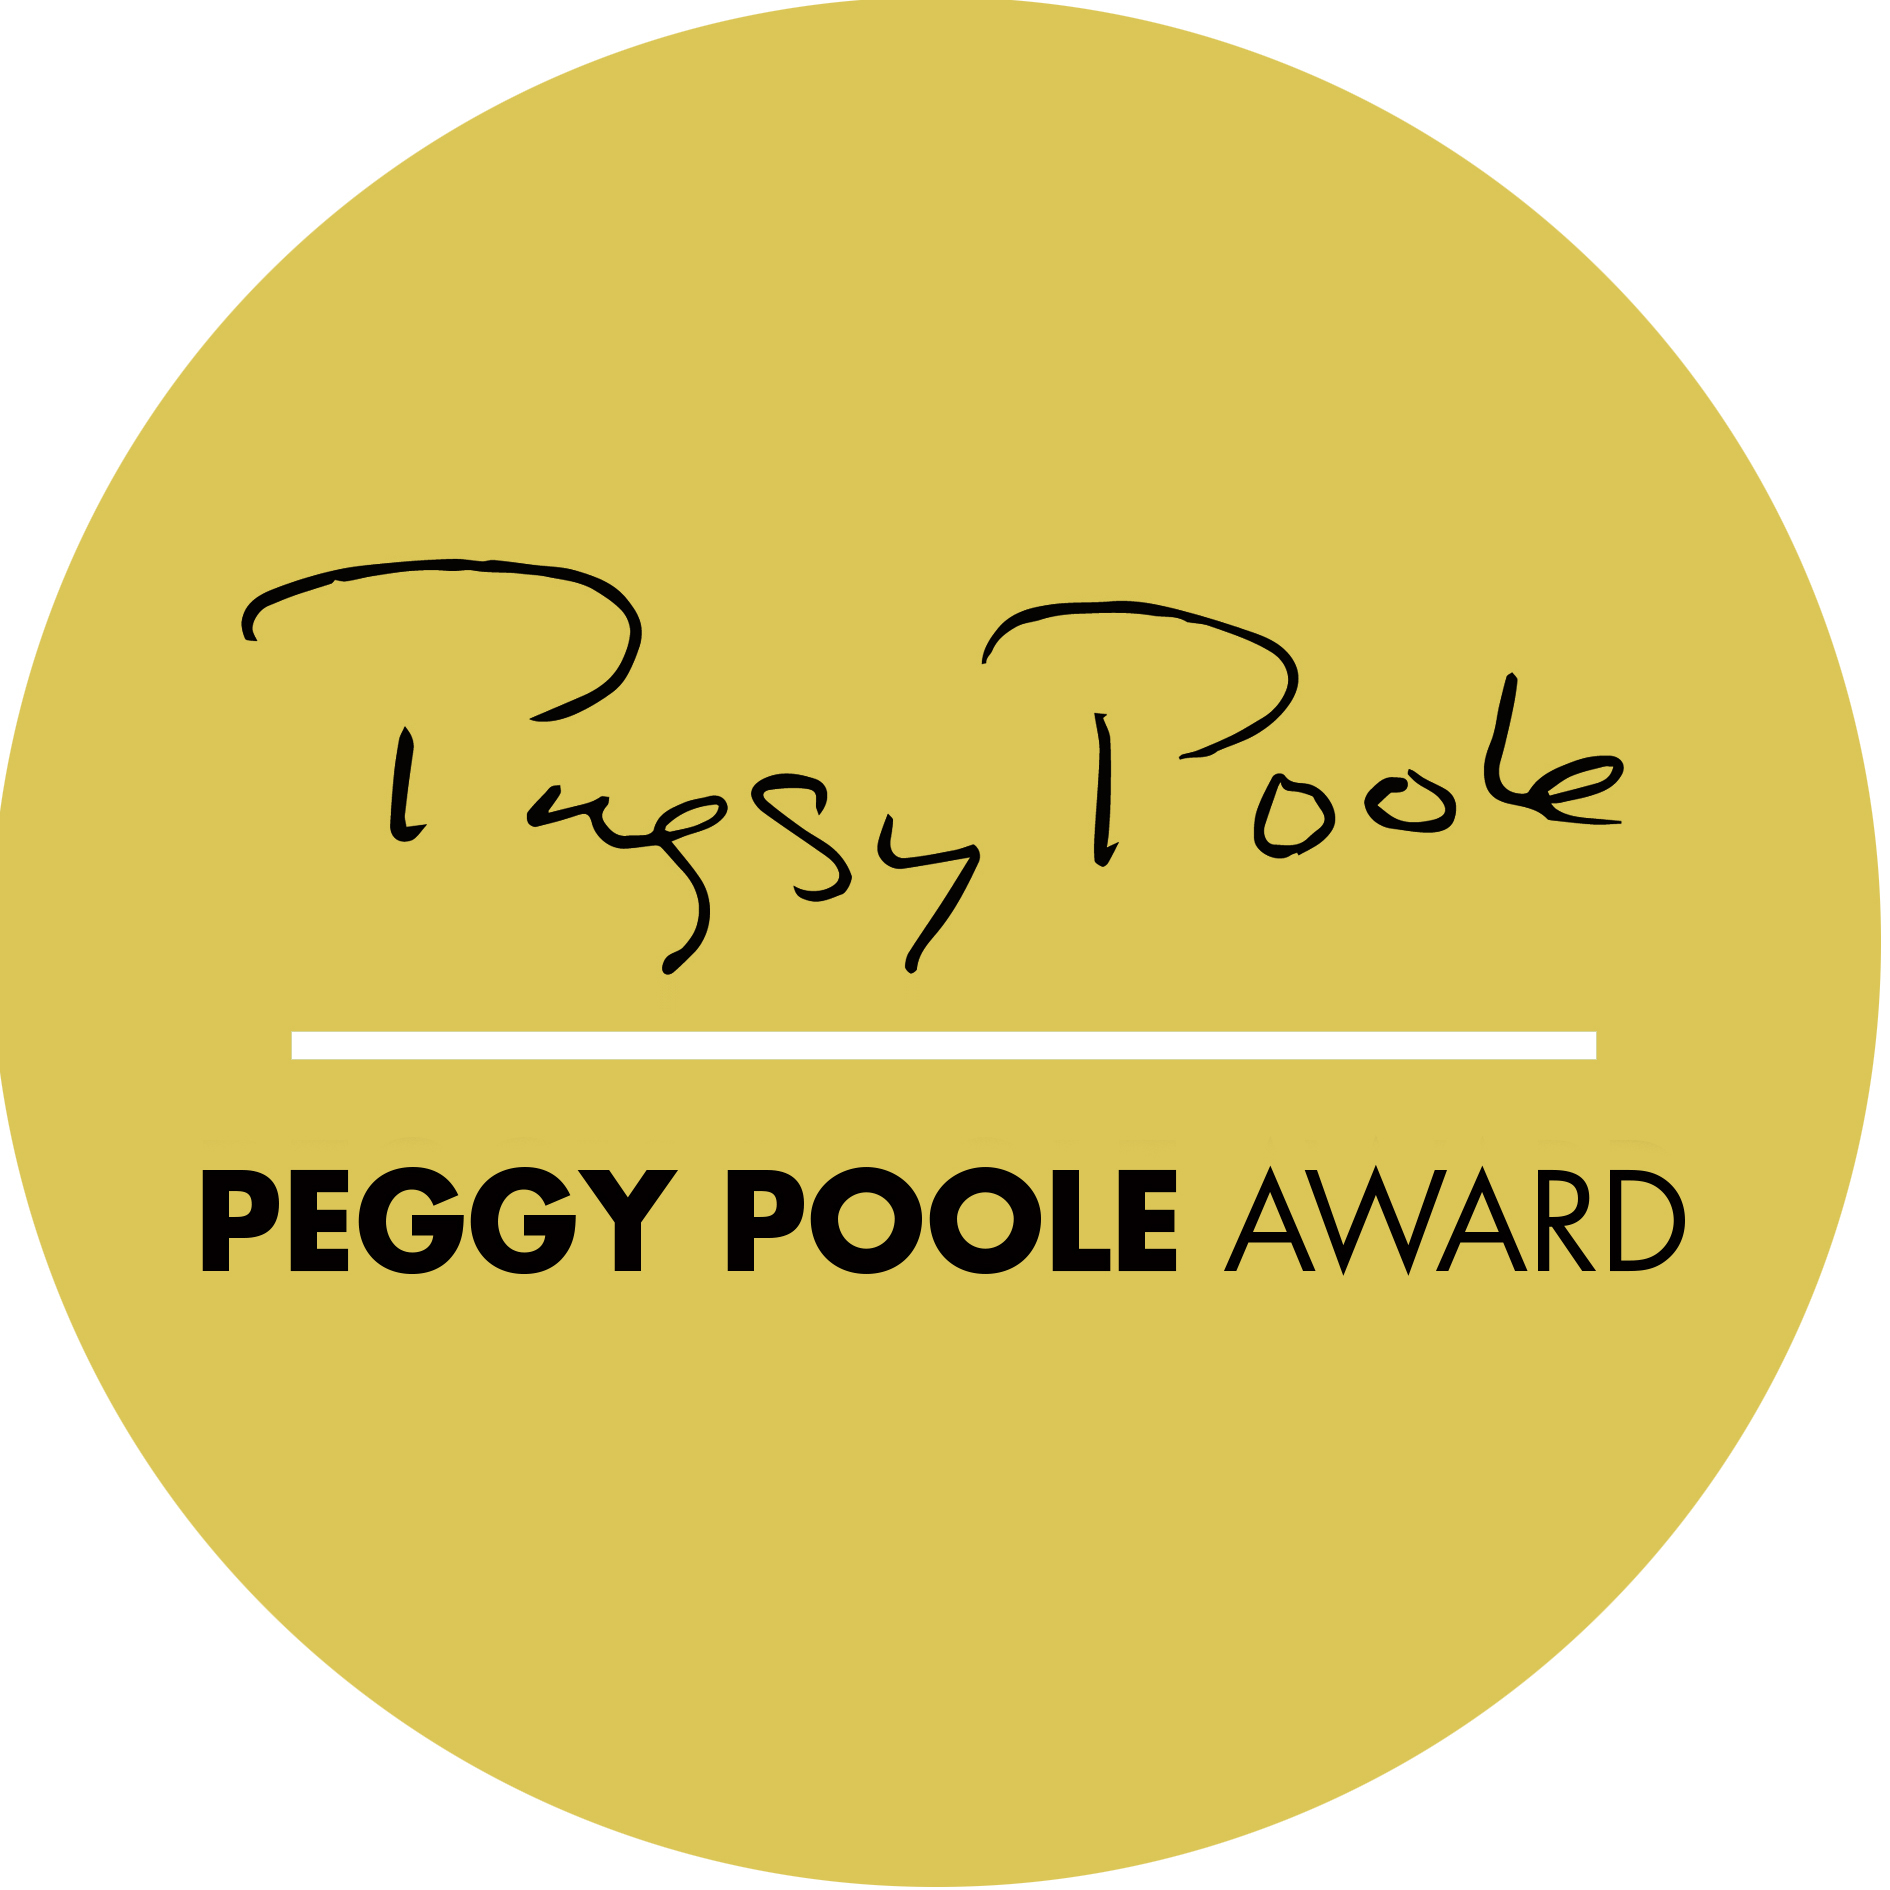 The Peggy Poole Award logo